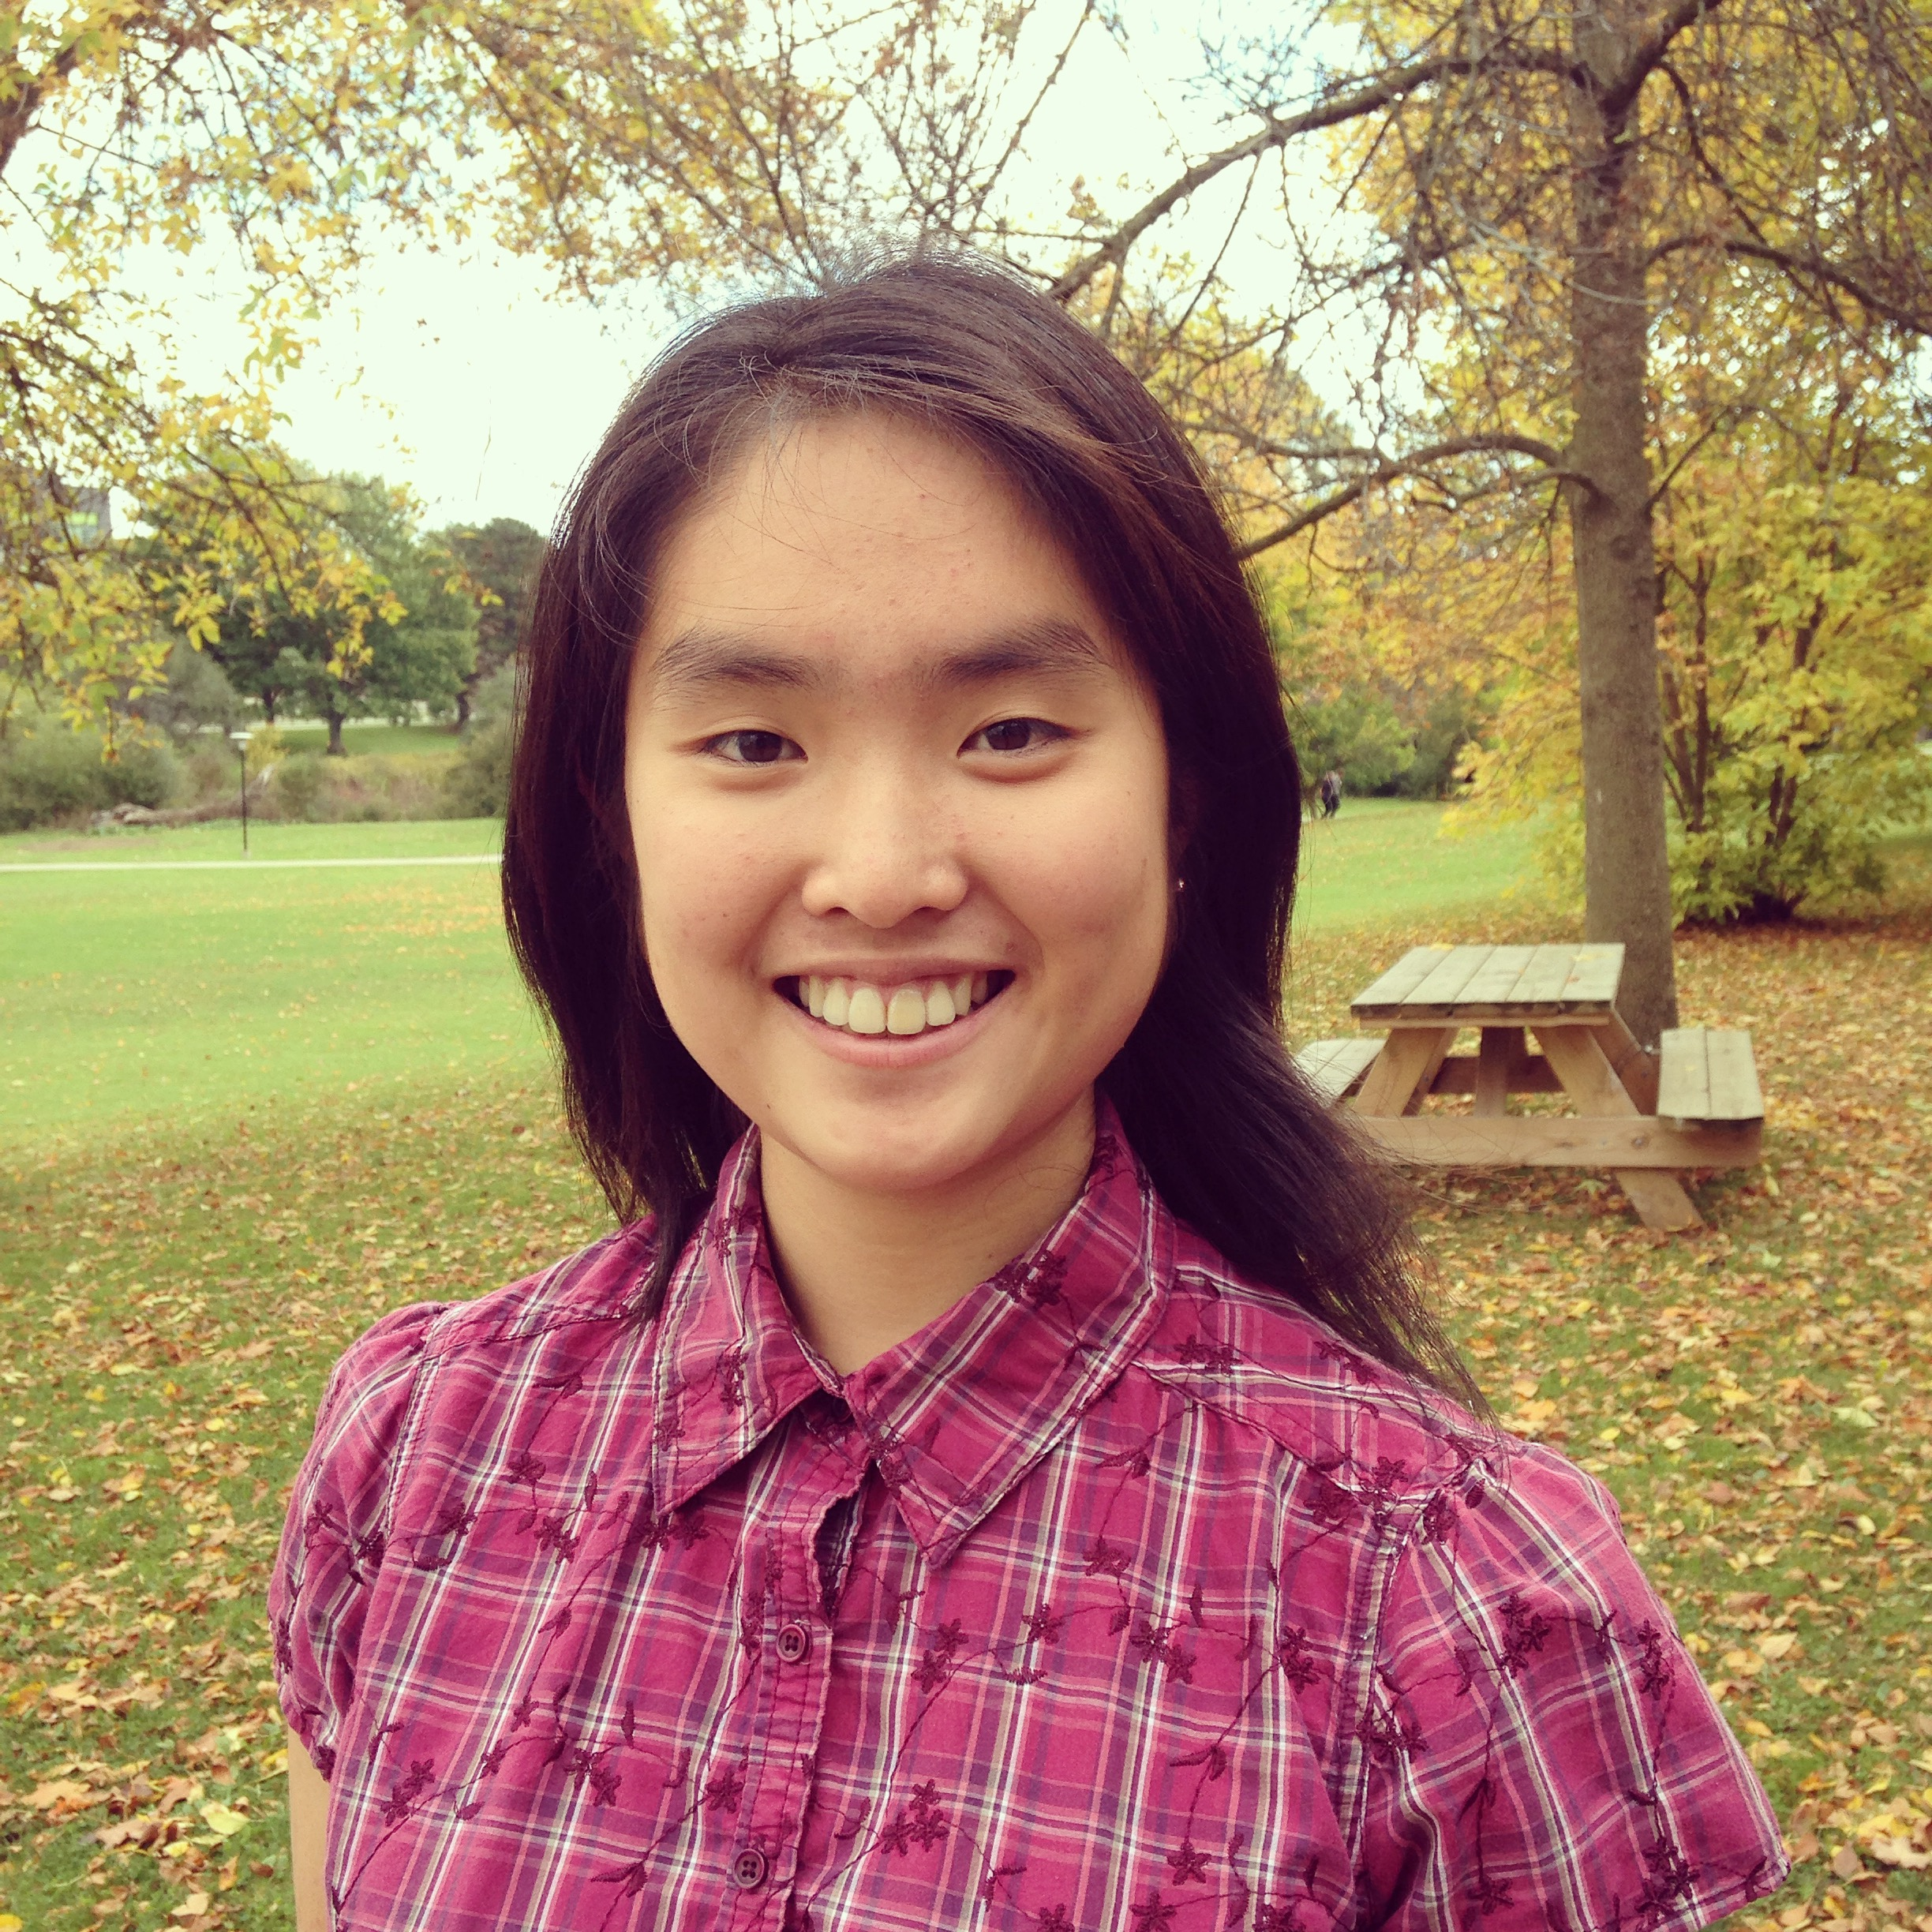 A picture of Amy Liou, our new student blogger.